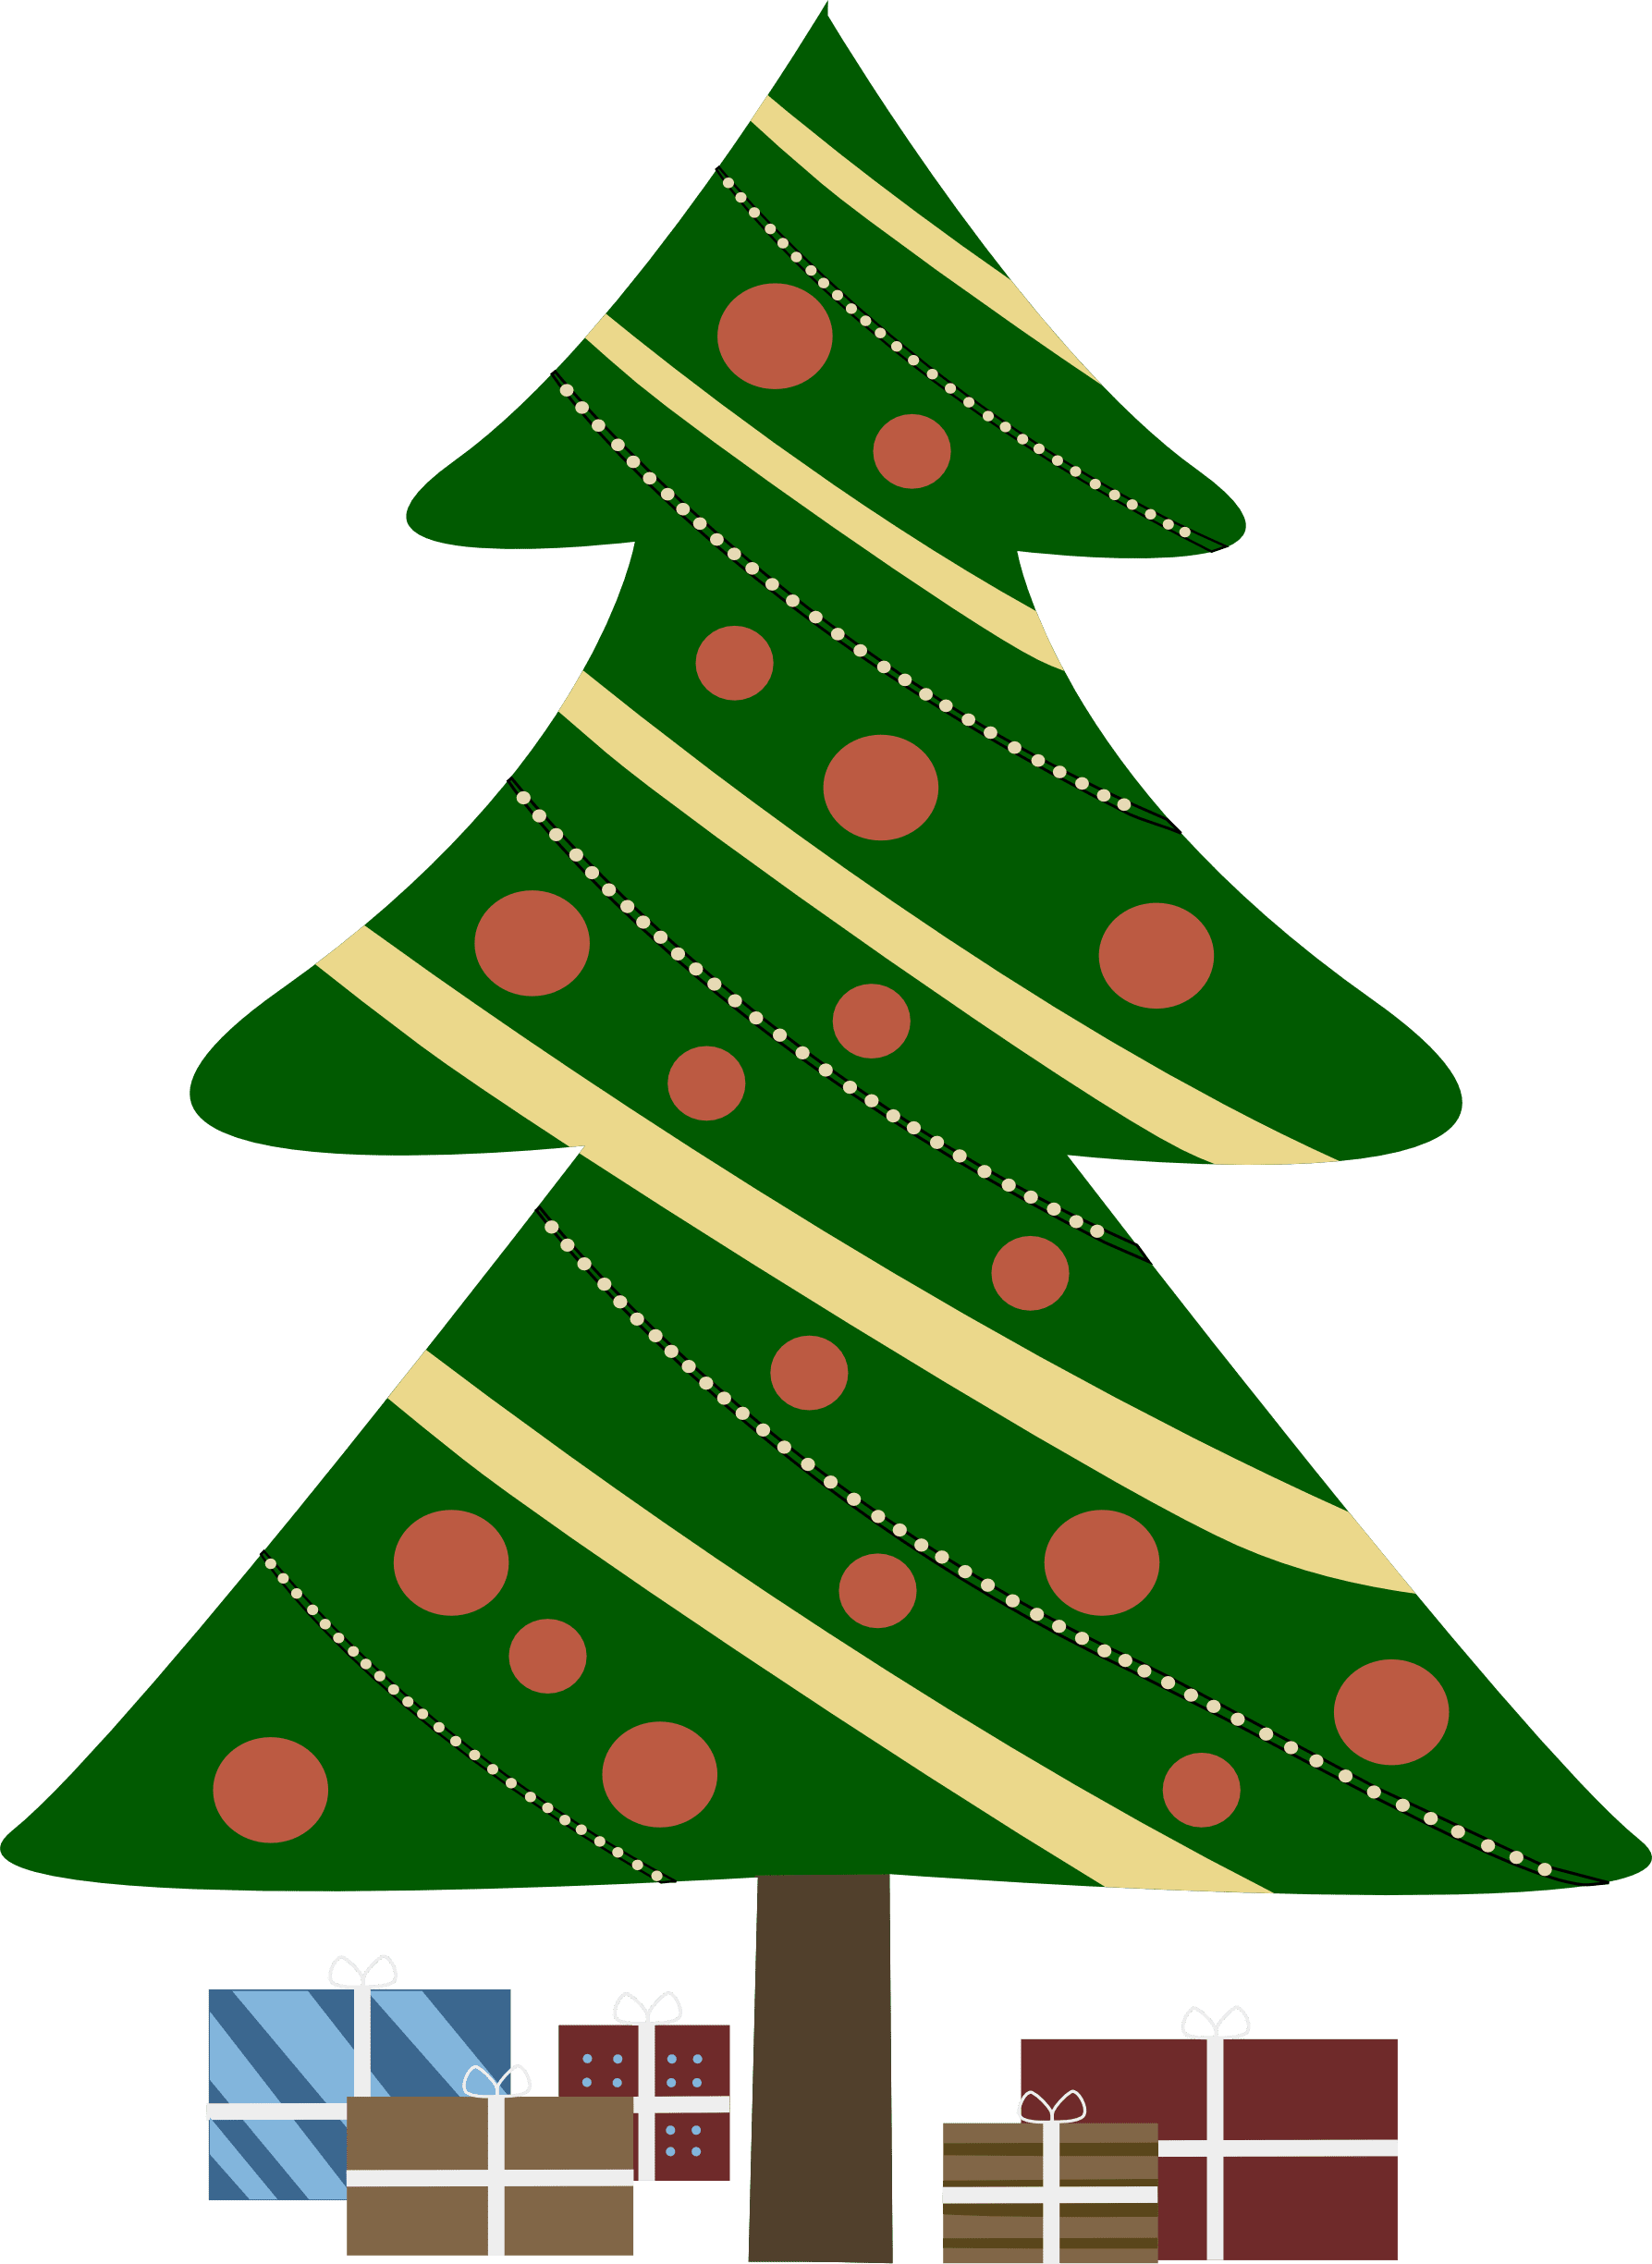 Abstract christmas tree clipart png svg transparent stock Christmas Tree Clipart Free at GetDrawings.com | Free for personal ... svg transparent stock